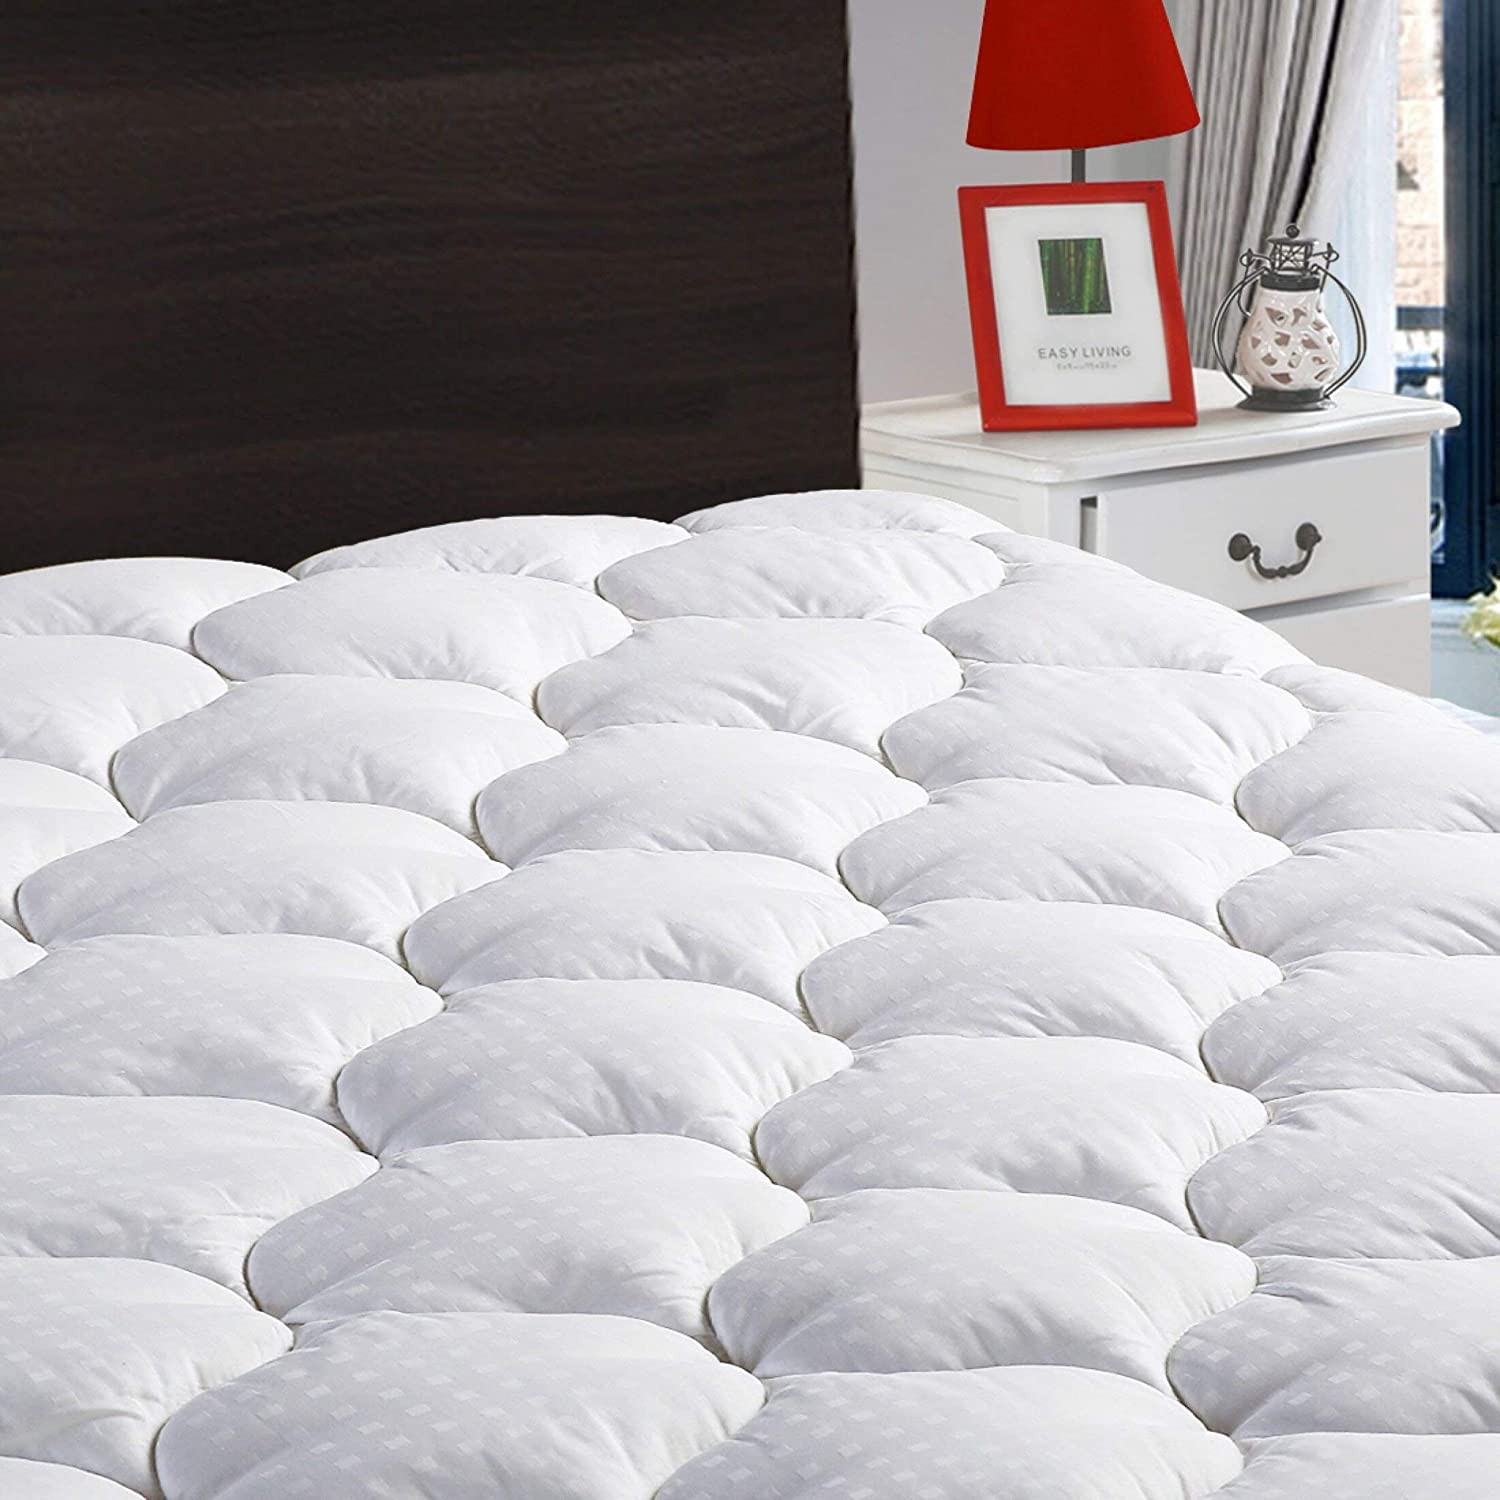 LEISURE TOWN Queen Mattress Pad Cover Cooling Mattress Topper Cotton Top Pillow Top with Snow Down Alternative Fill